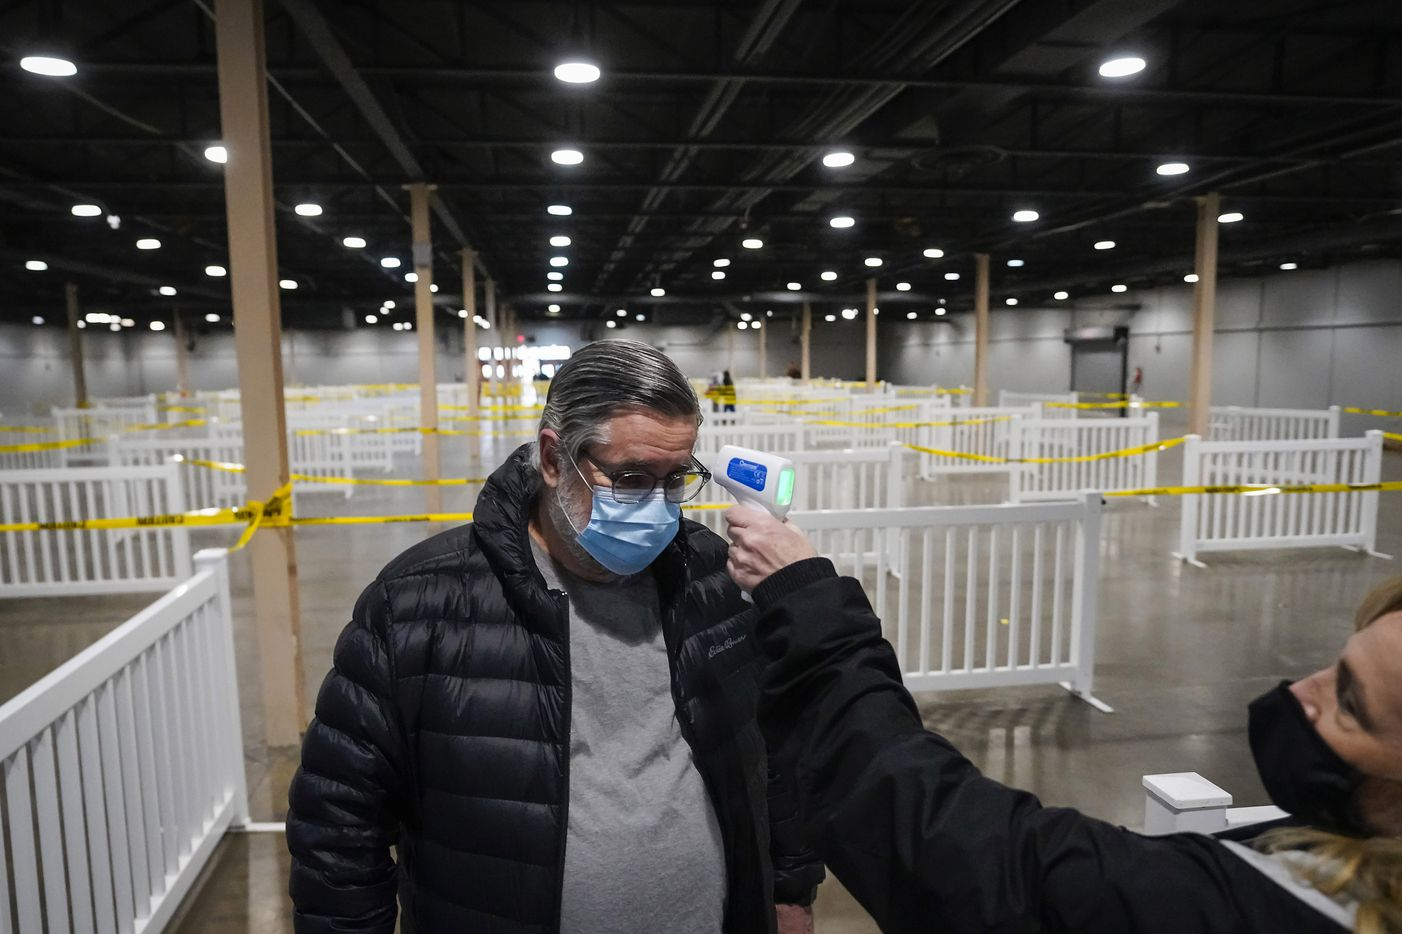 Davis Mosmeyer, 69, entered Fair Park in Dallas on Monday, January 11, 2021, to undergo a temperature test when entering the building in front of the production line. Dallas County launched its first